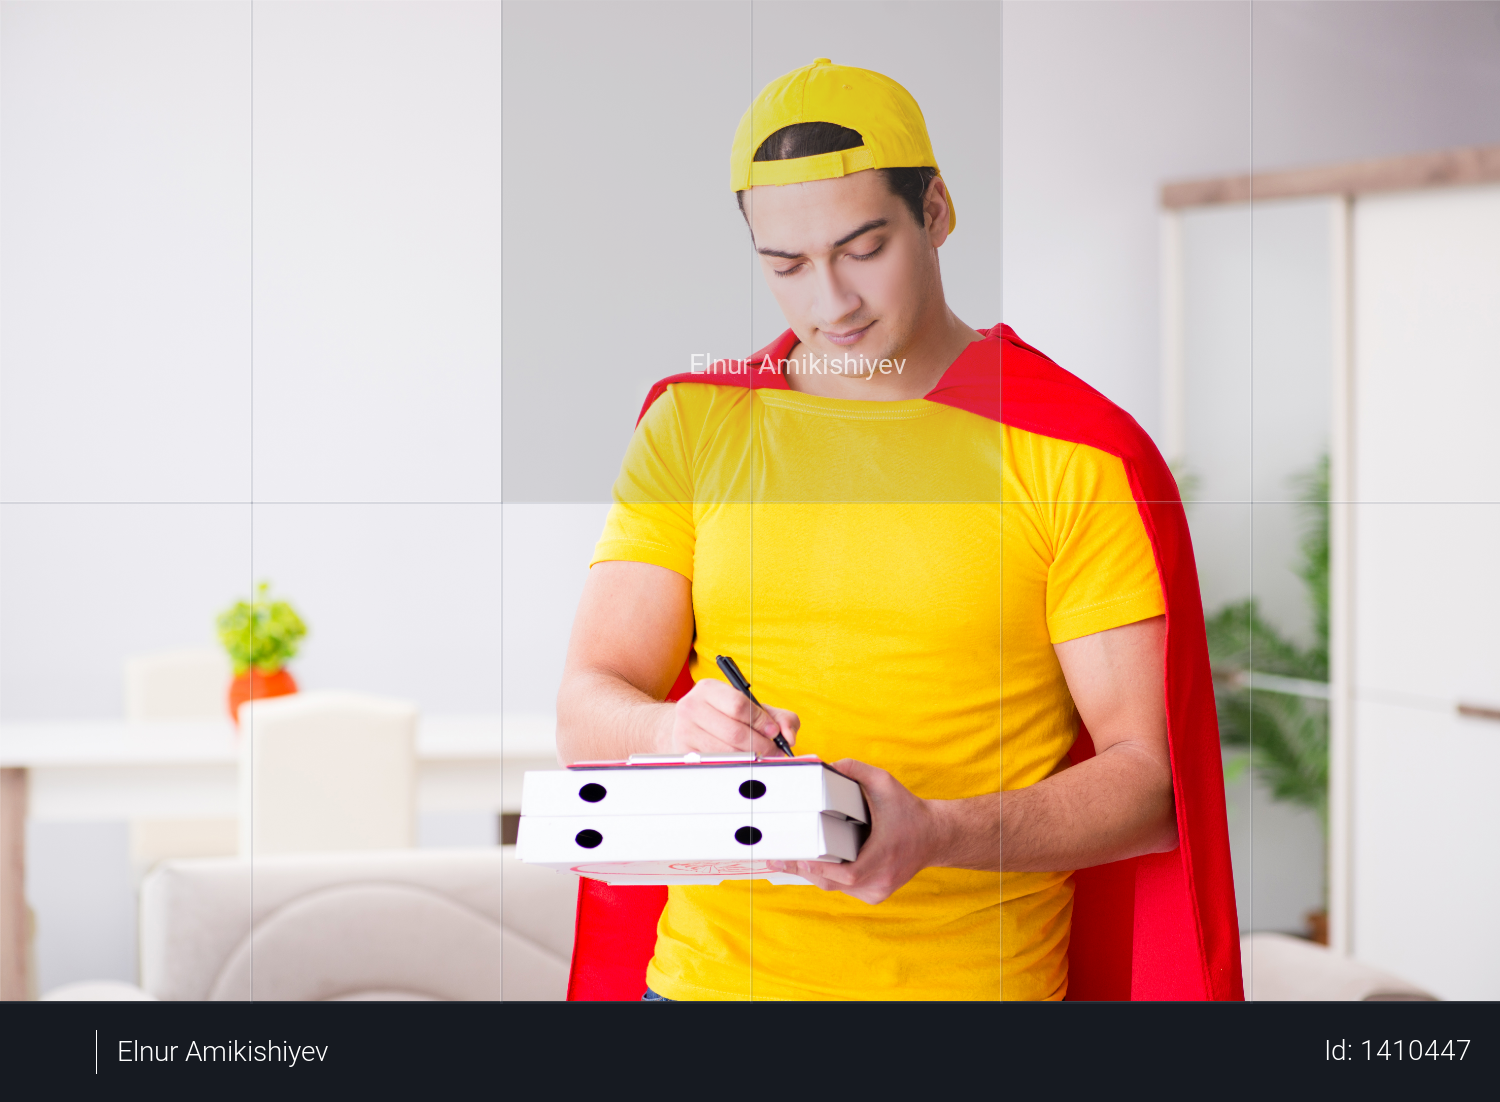 Superhero pizza delivery guy with red cover Photo